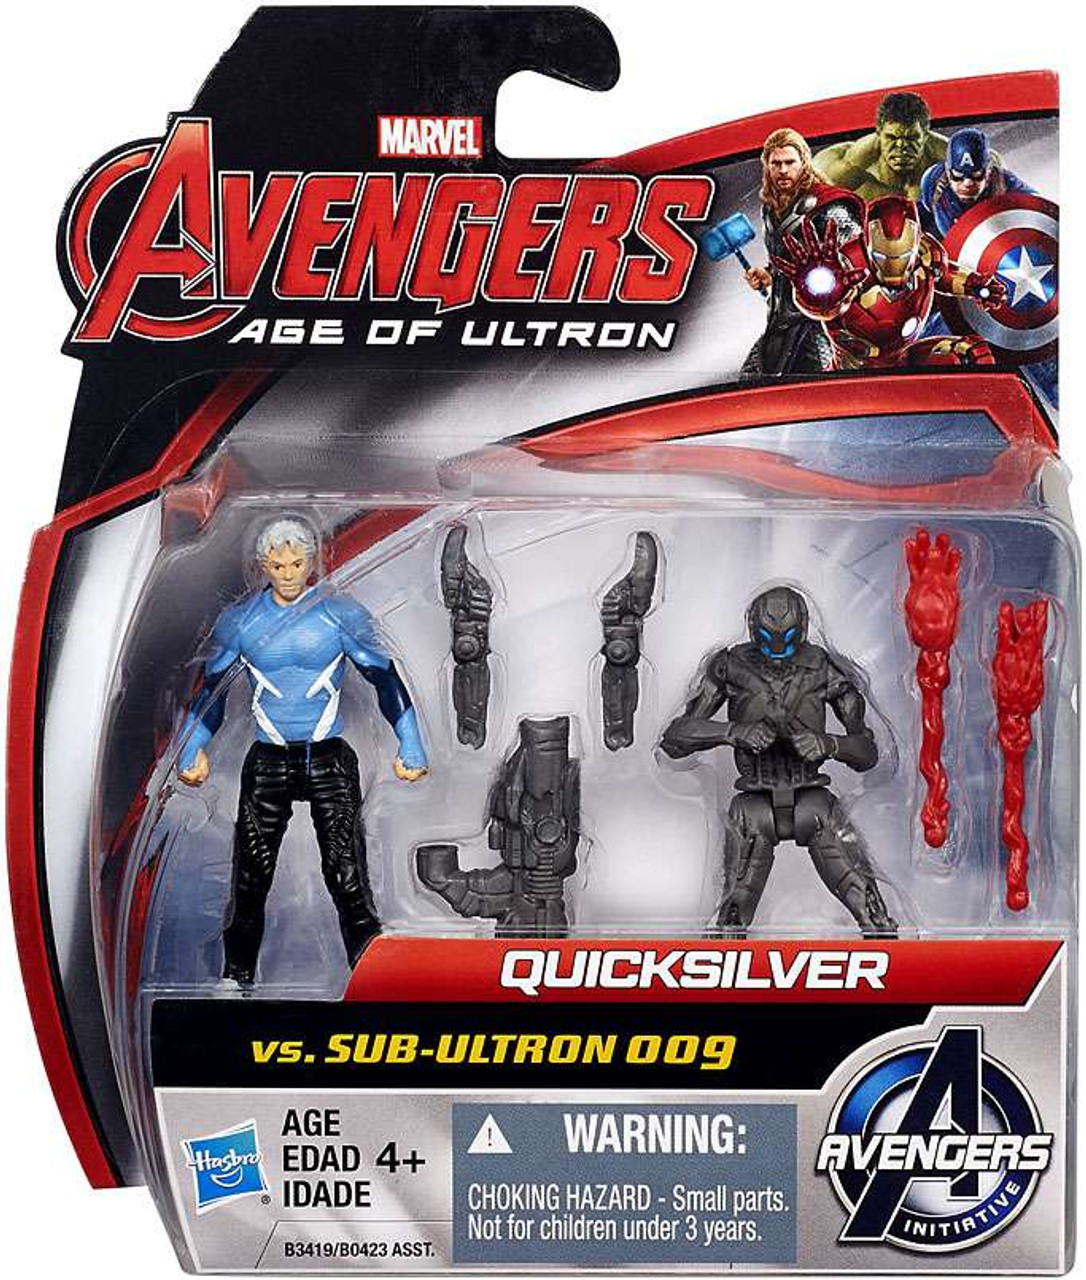 CHOOSE YOUR MARVEL AVENGERS AGE OF ULTRON HULK THOR 2.5' ACTION TOY FIGURE